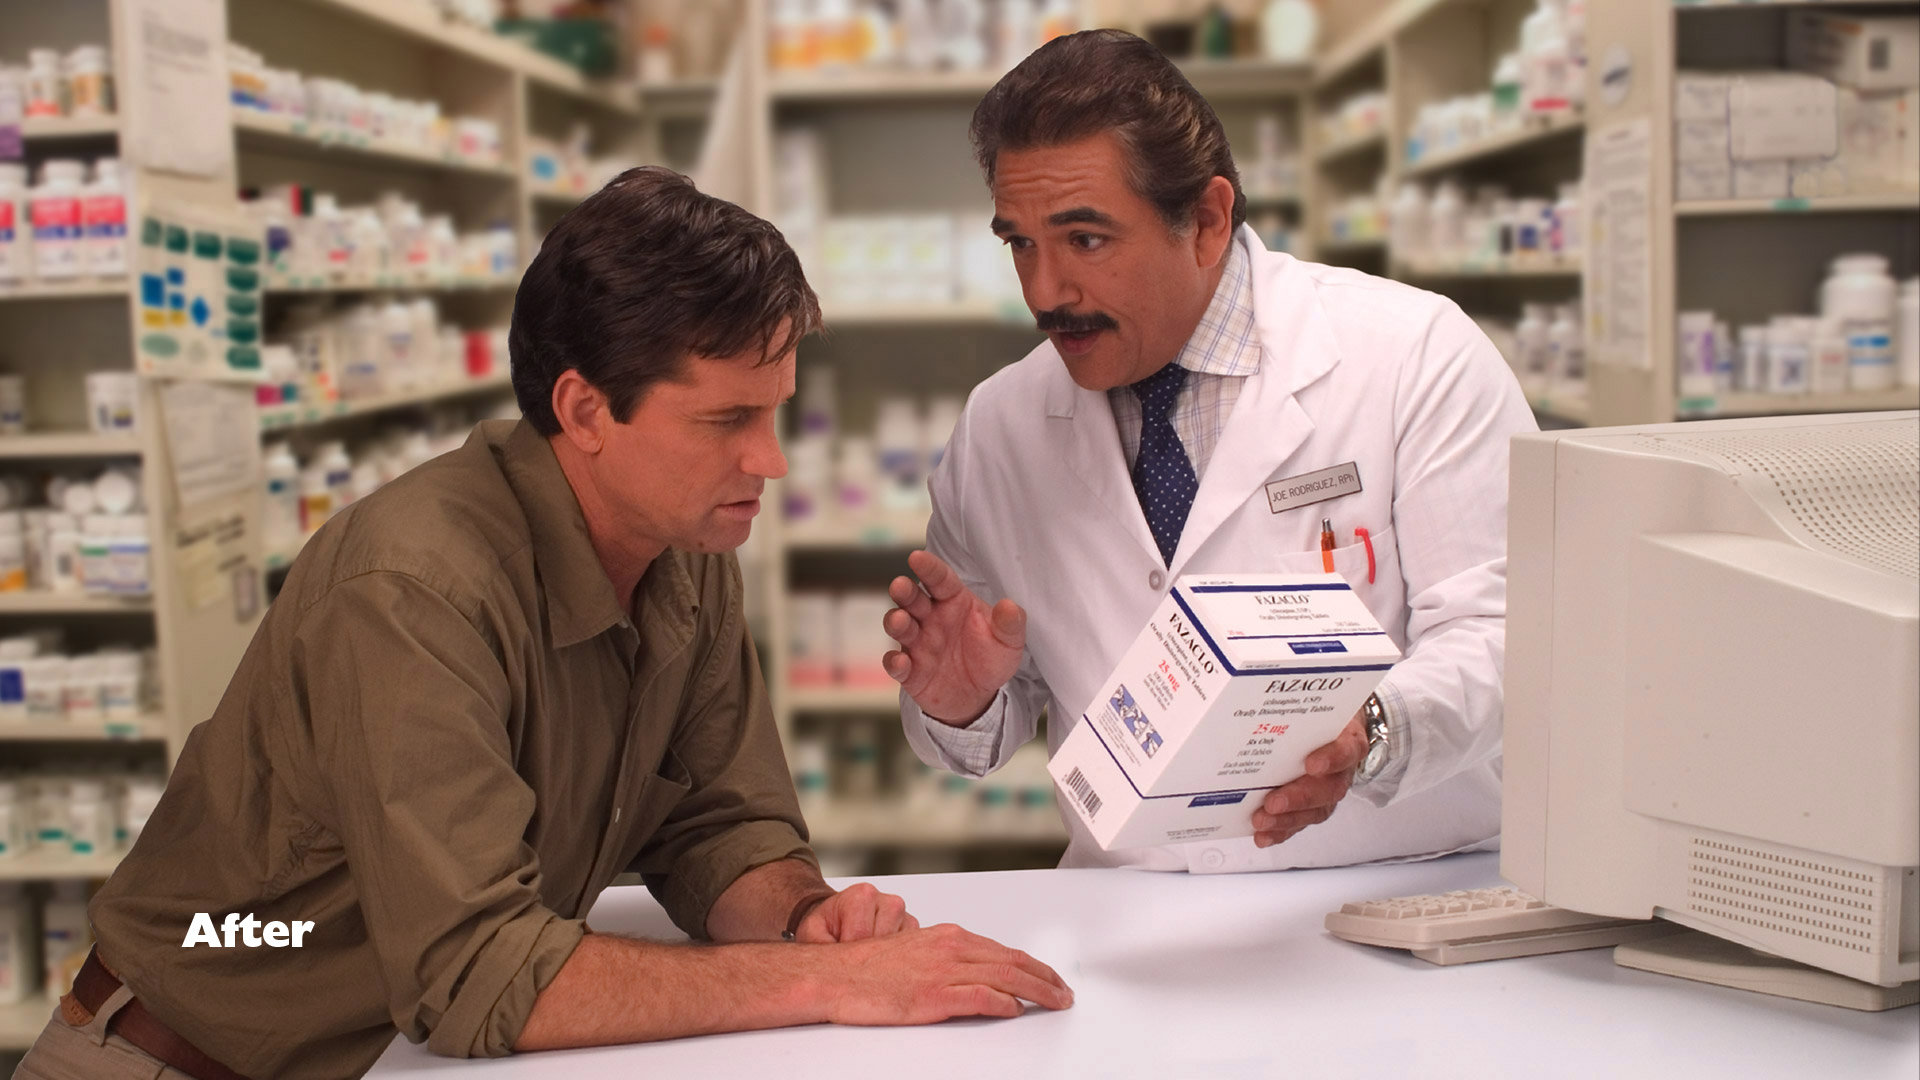 CGI-illustration-Pharmacist-After